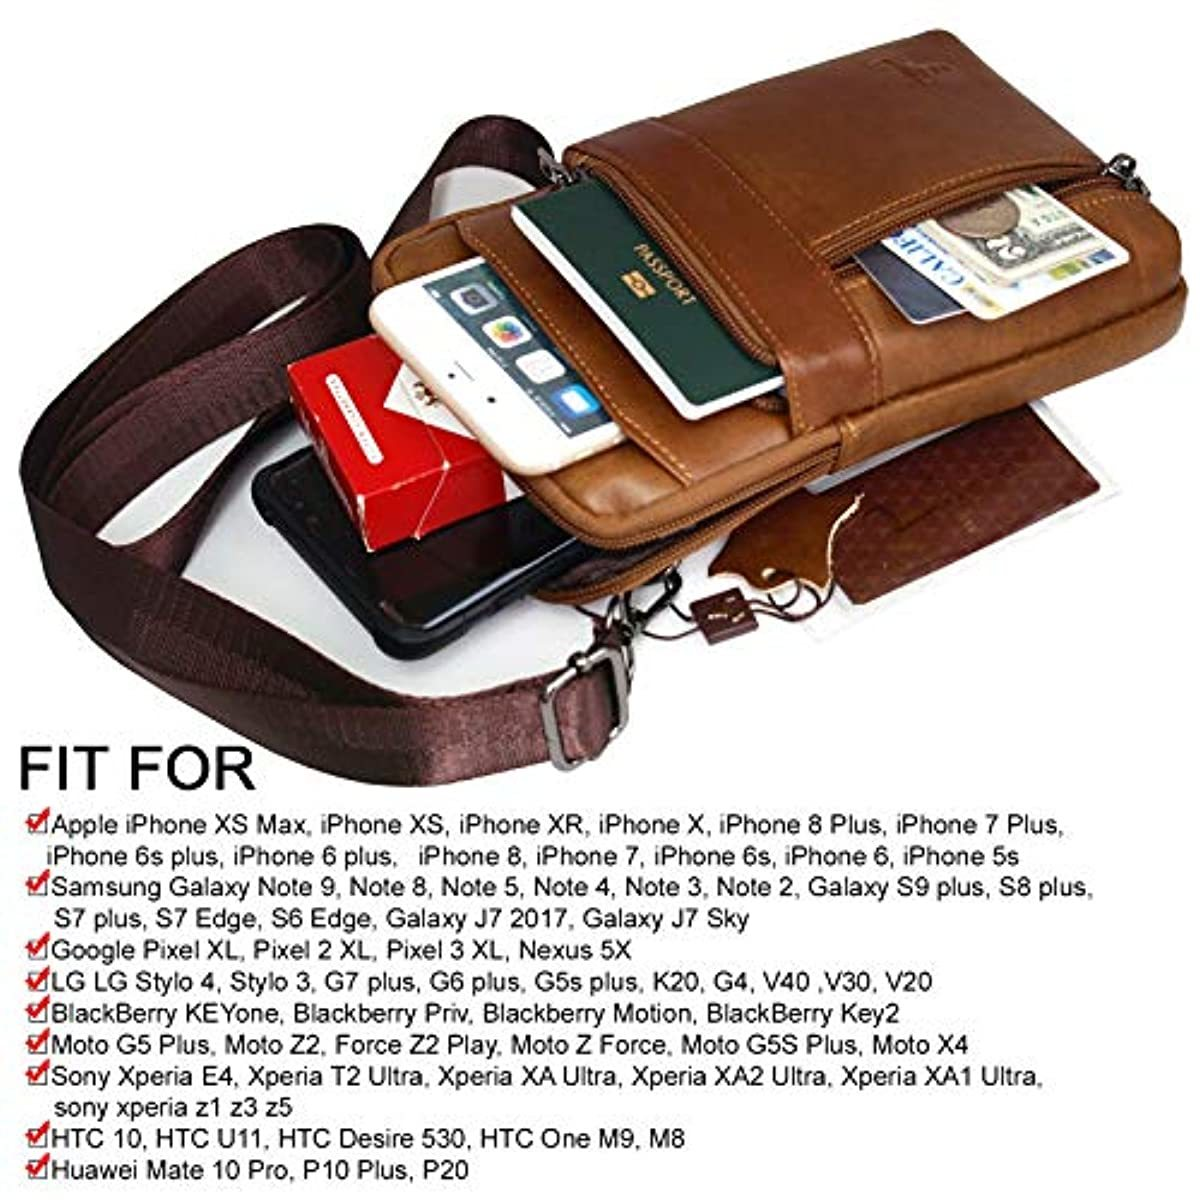 Phone Purse iPhone 11 Max Pro Leather Cell phone Holster Case Belt Loop Pouch Travel Messenger Bag  1315 - ENCACC